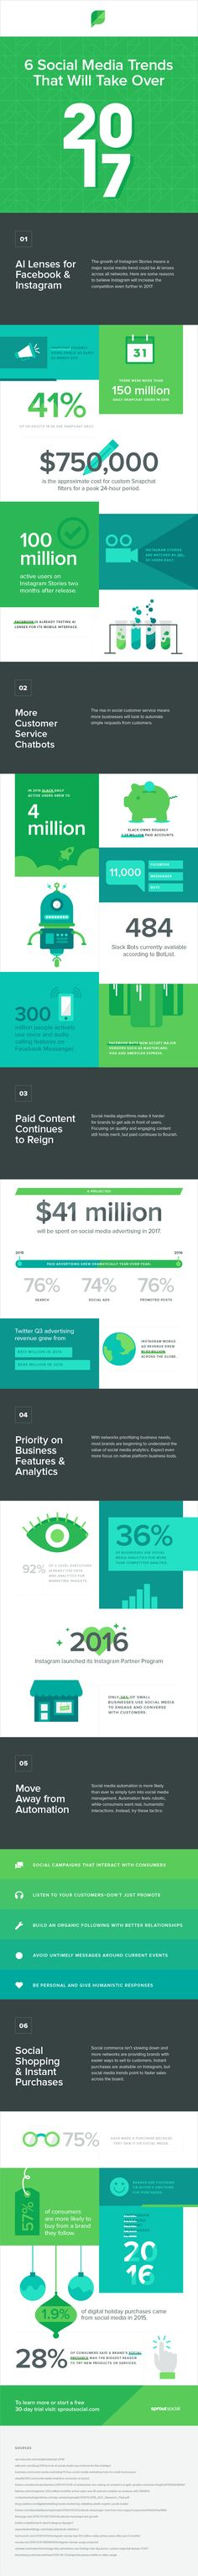 6 Social Media Trends That Will Change The Game In 2017 - infographic